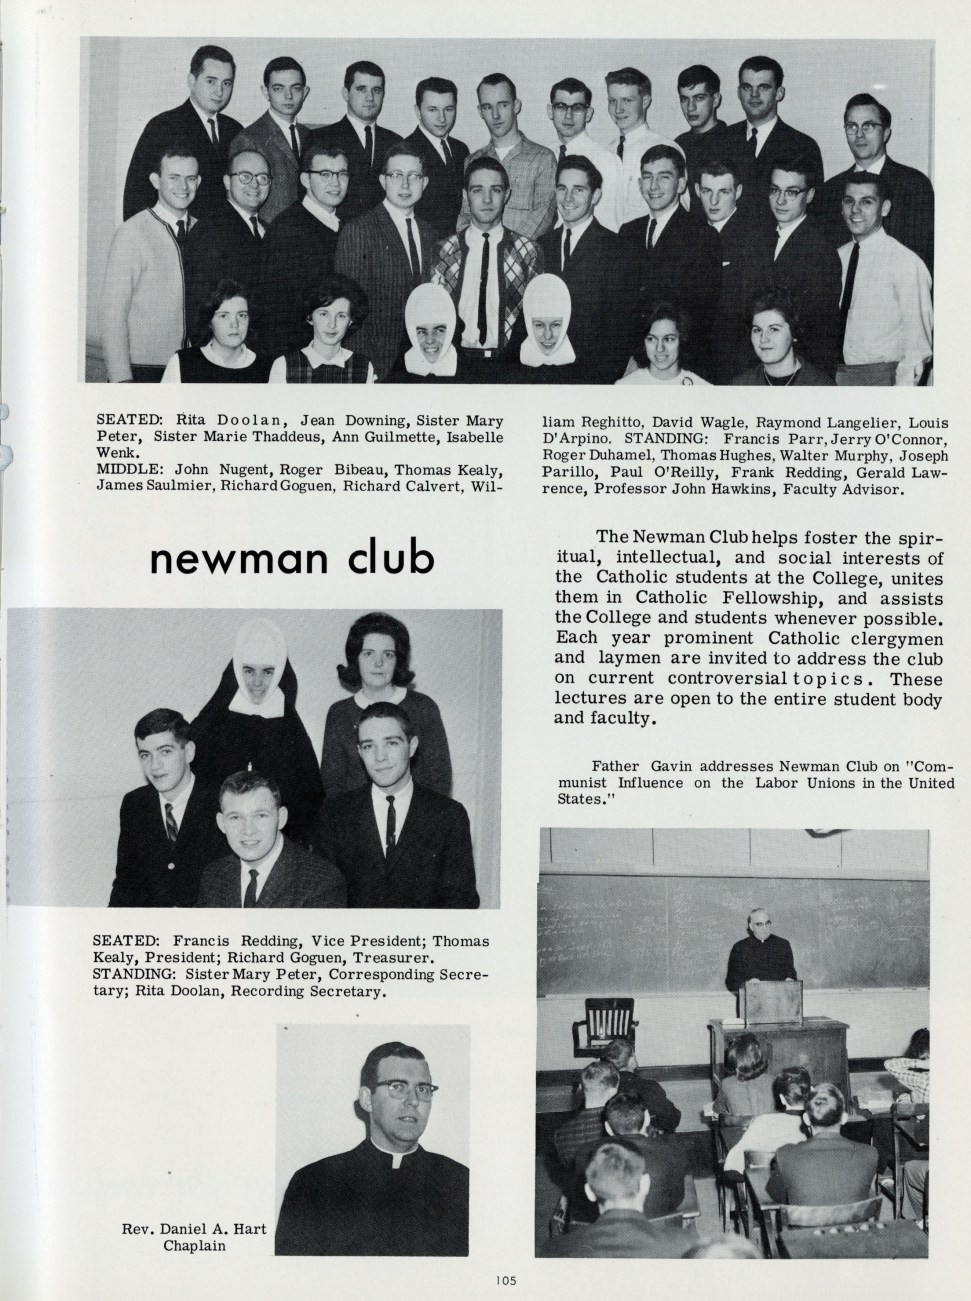 1962 - Newman Club (photo from 1964)